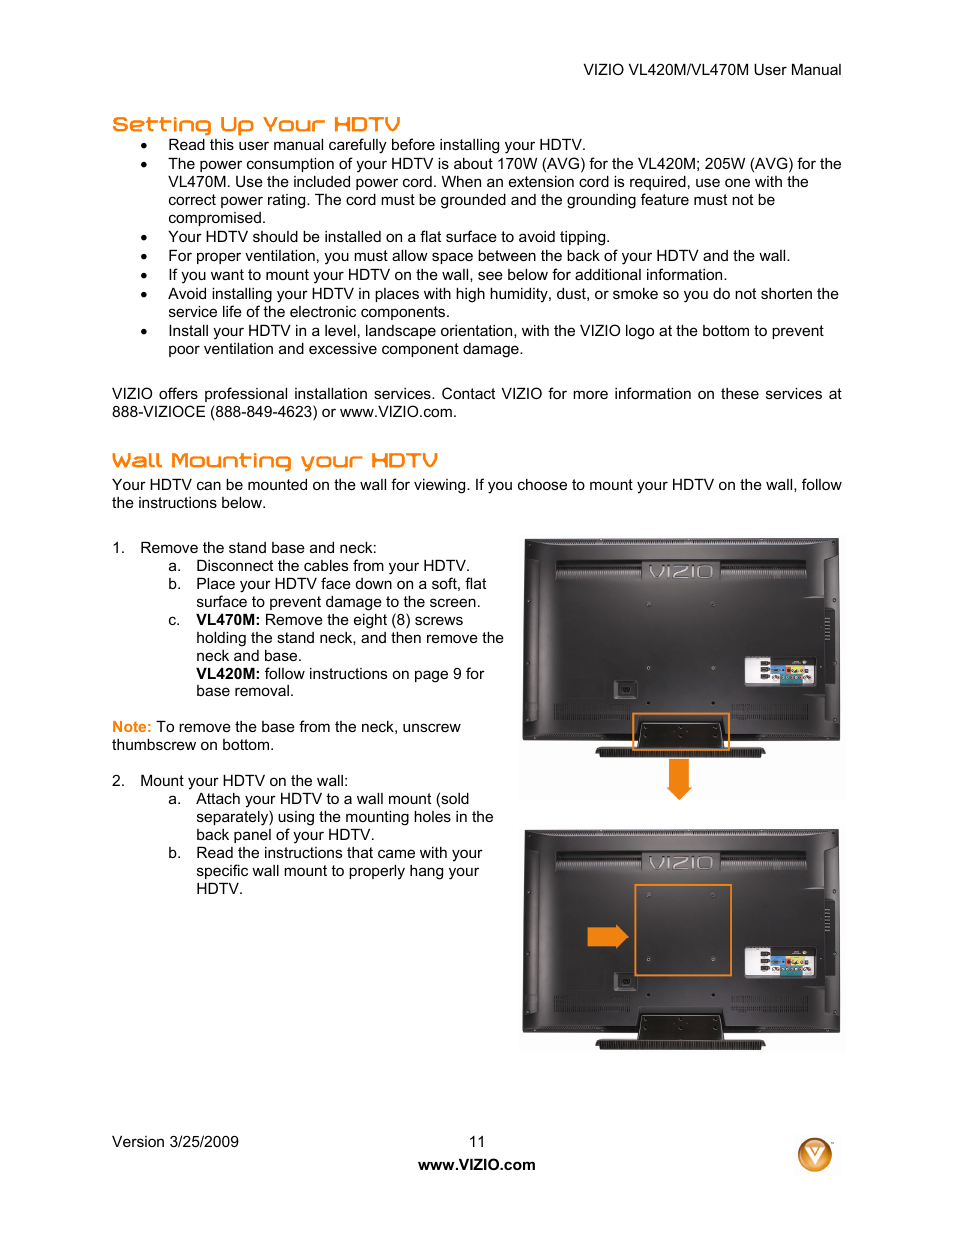 Vizio vl470m manual daily instruction manual guides setting up your hdtv wall mounting your hdtv vizio vl470m user rh manualsdir com vizio m series remote vizio base mounting screws fandeluxe Image collections